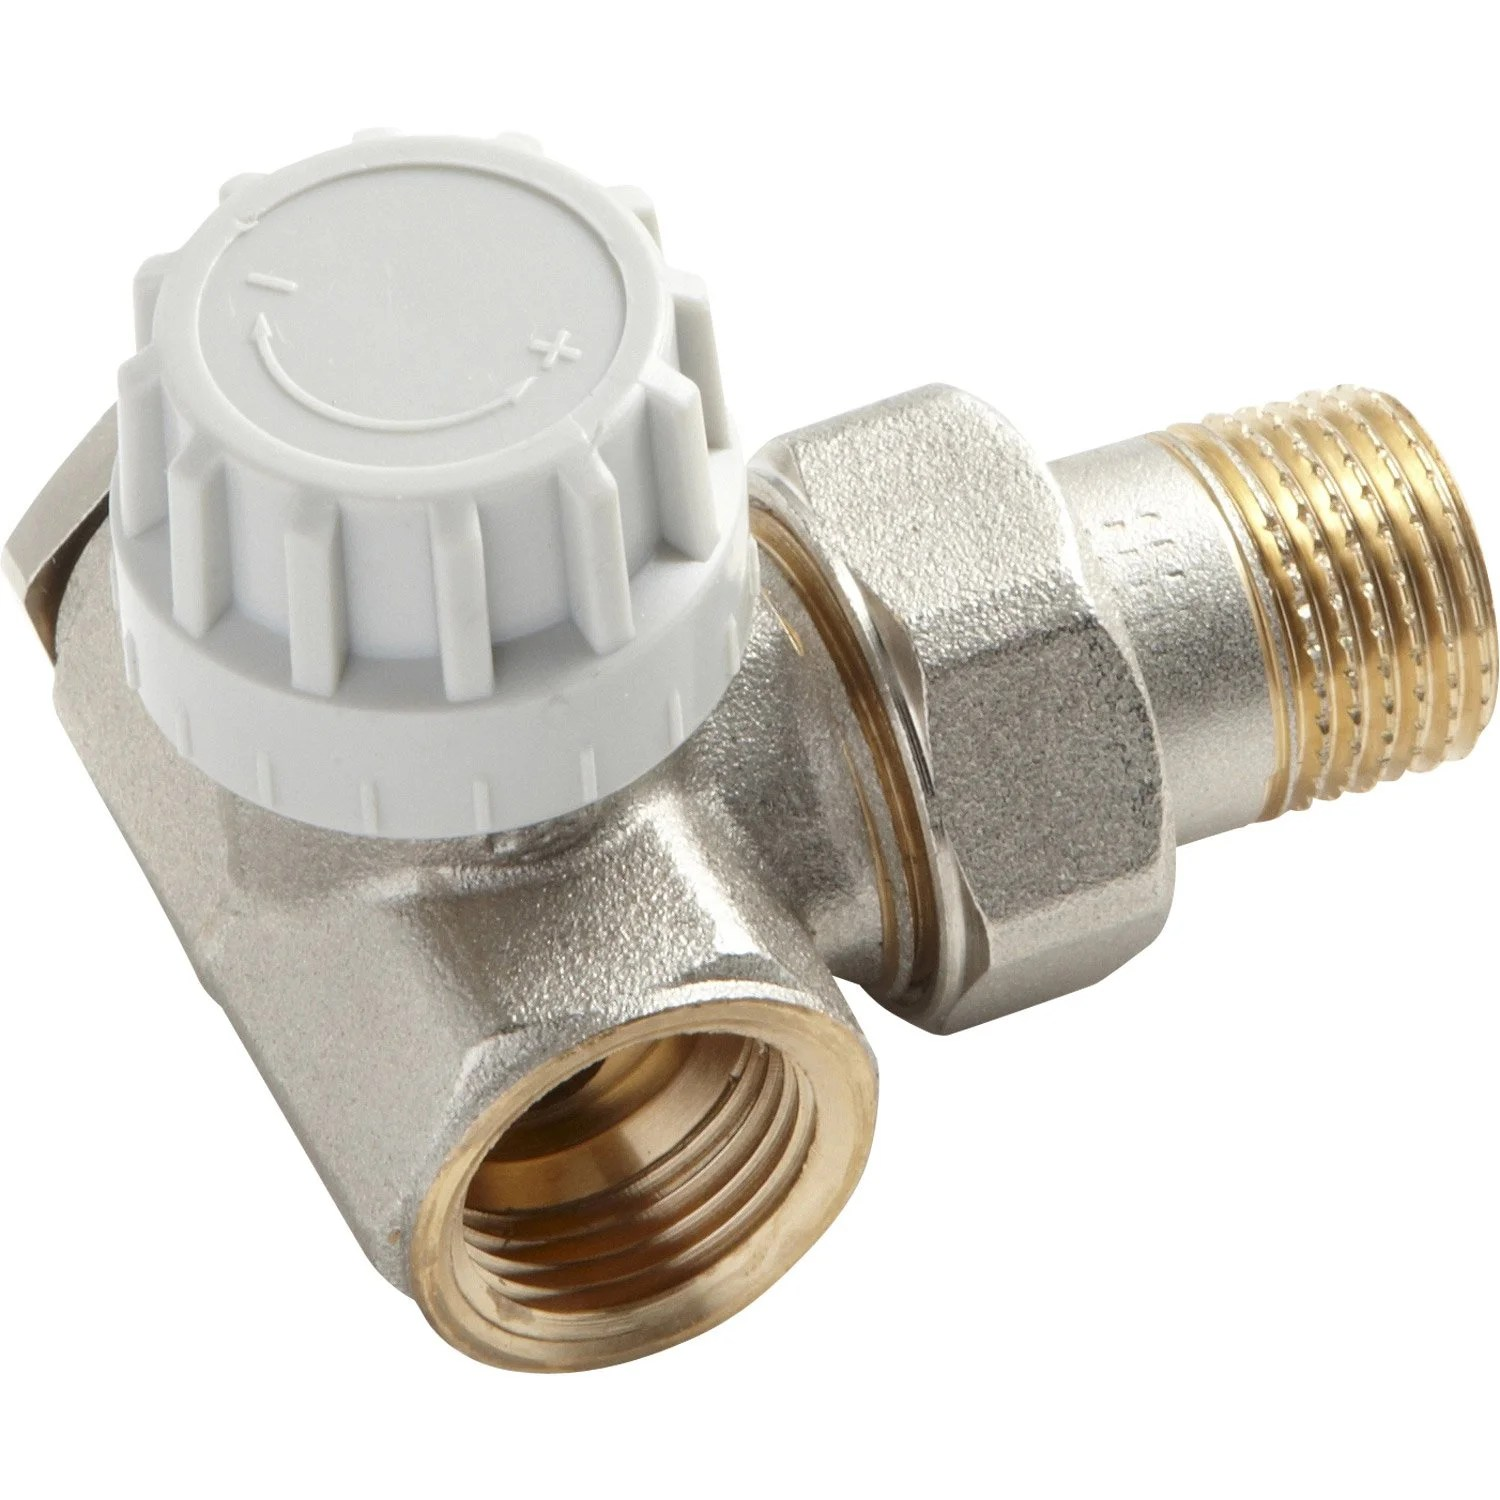 Robinet Thermostatique Equerre Inversee 1 2 Male Femelle